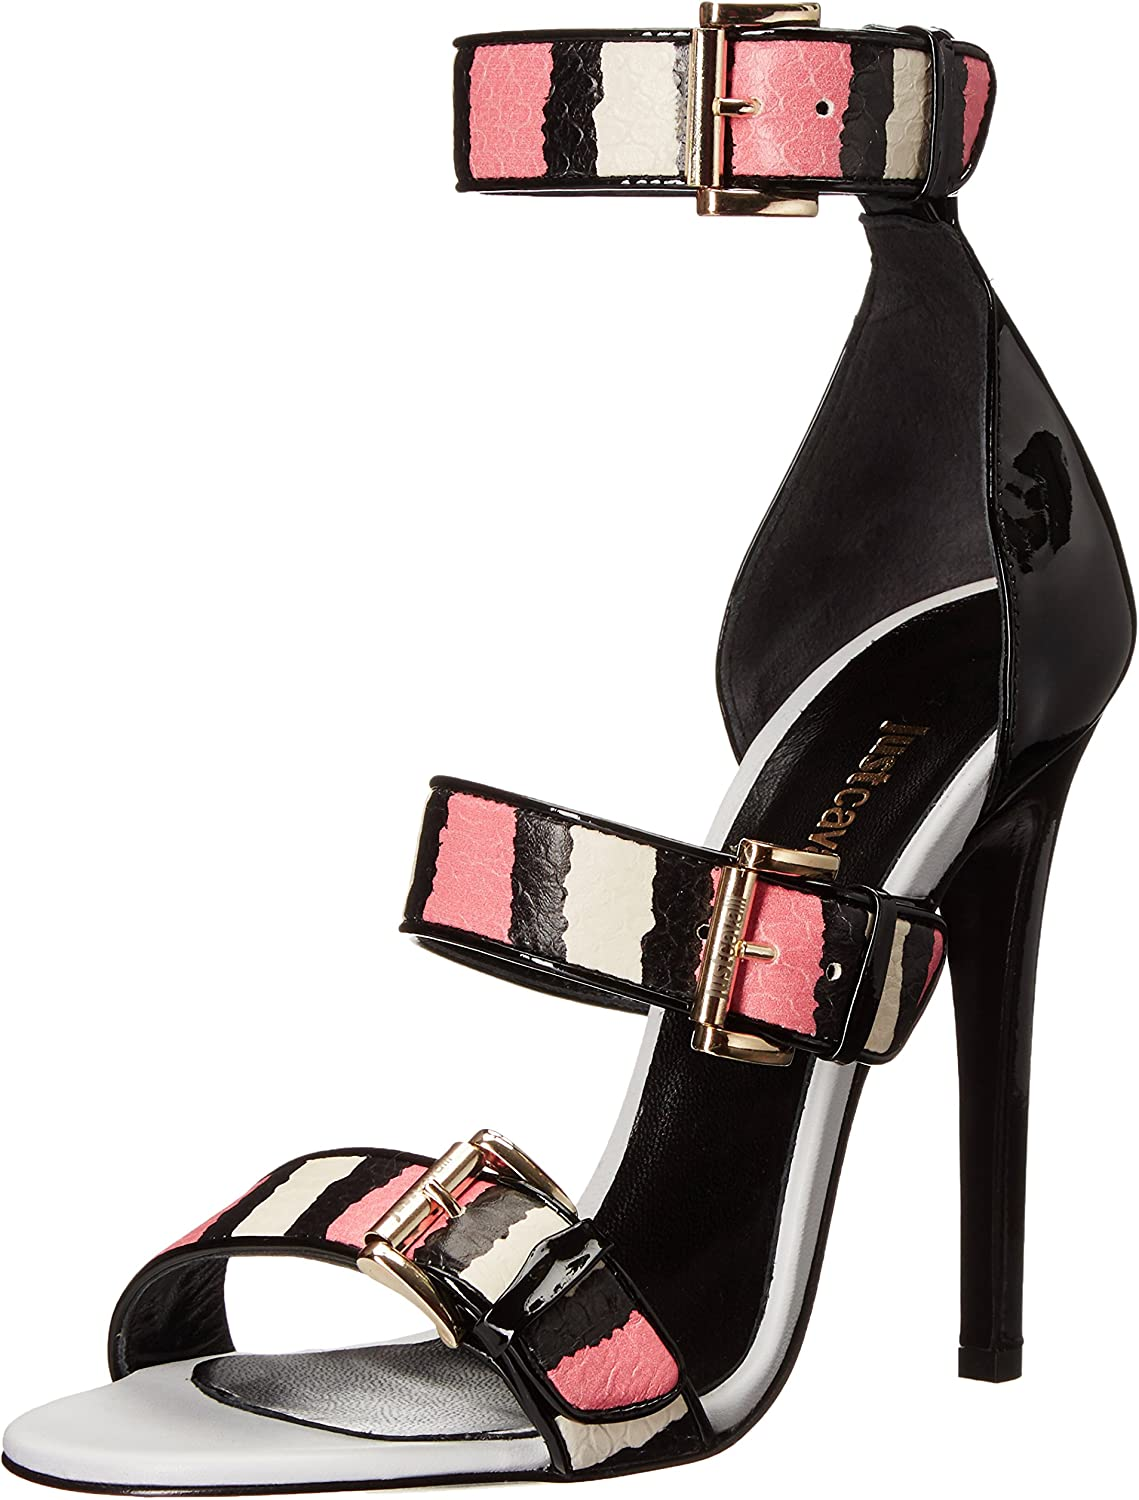 Just Cavalli Womens Buckled Strappy Dress Sandal